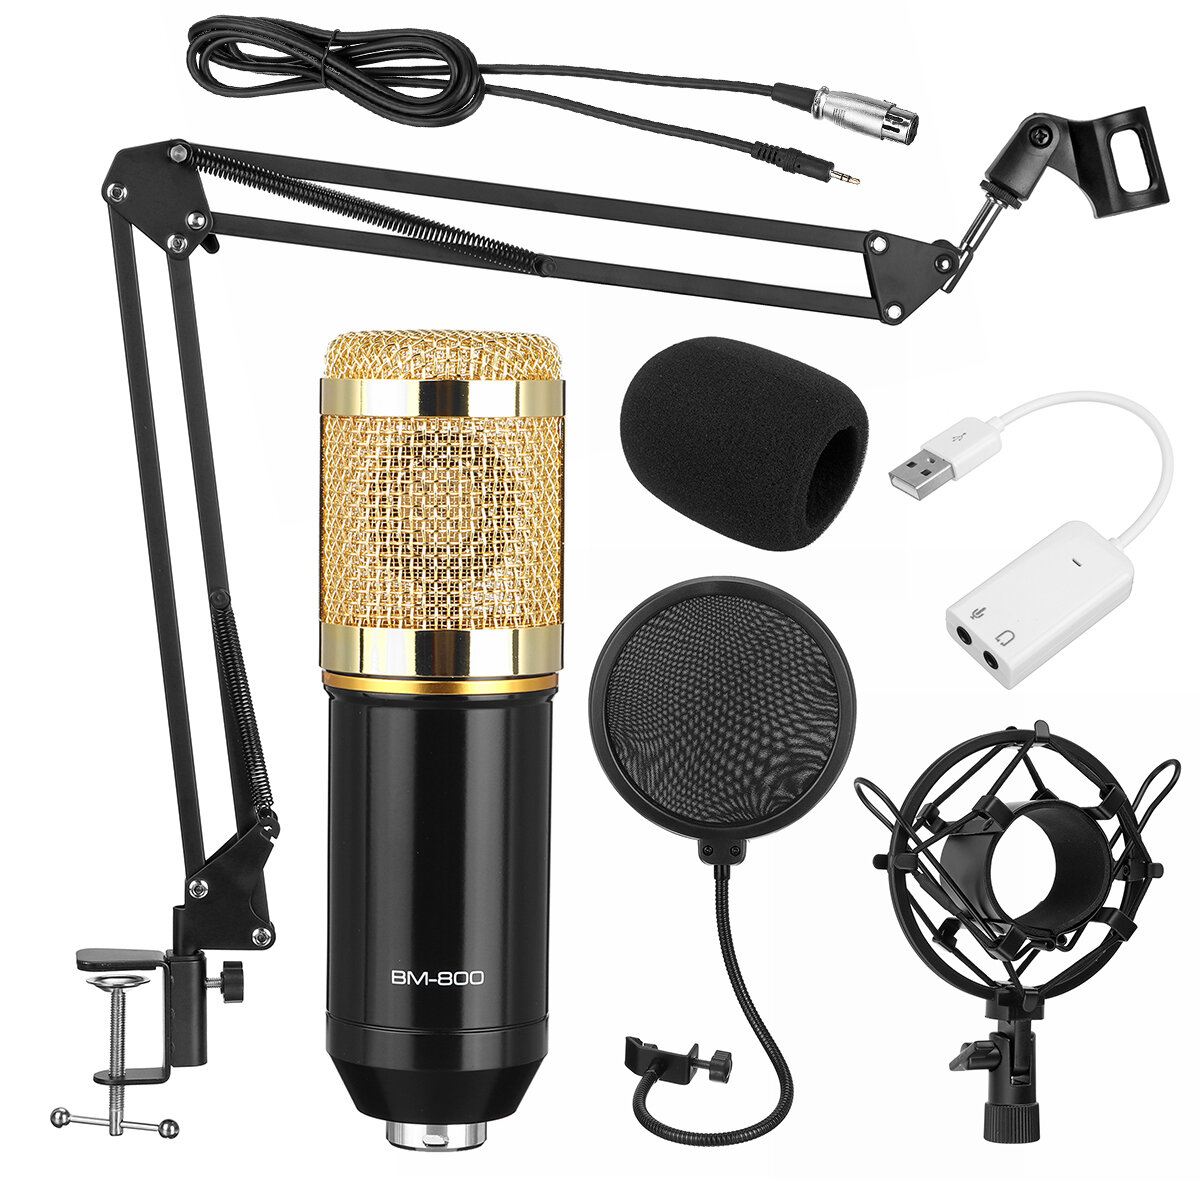 BM800 Pro Condenser Microphone Kit Studio Suspension Boom Scissor Arm Stand with Fliter from Banggood